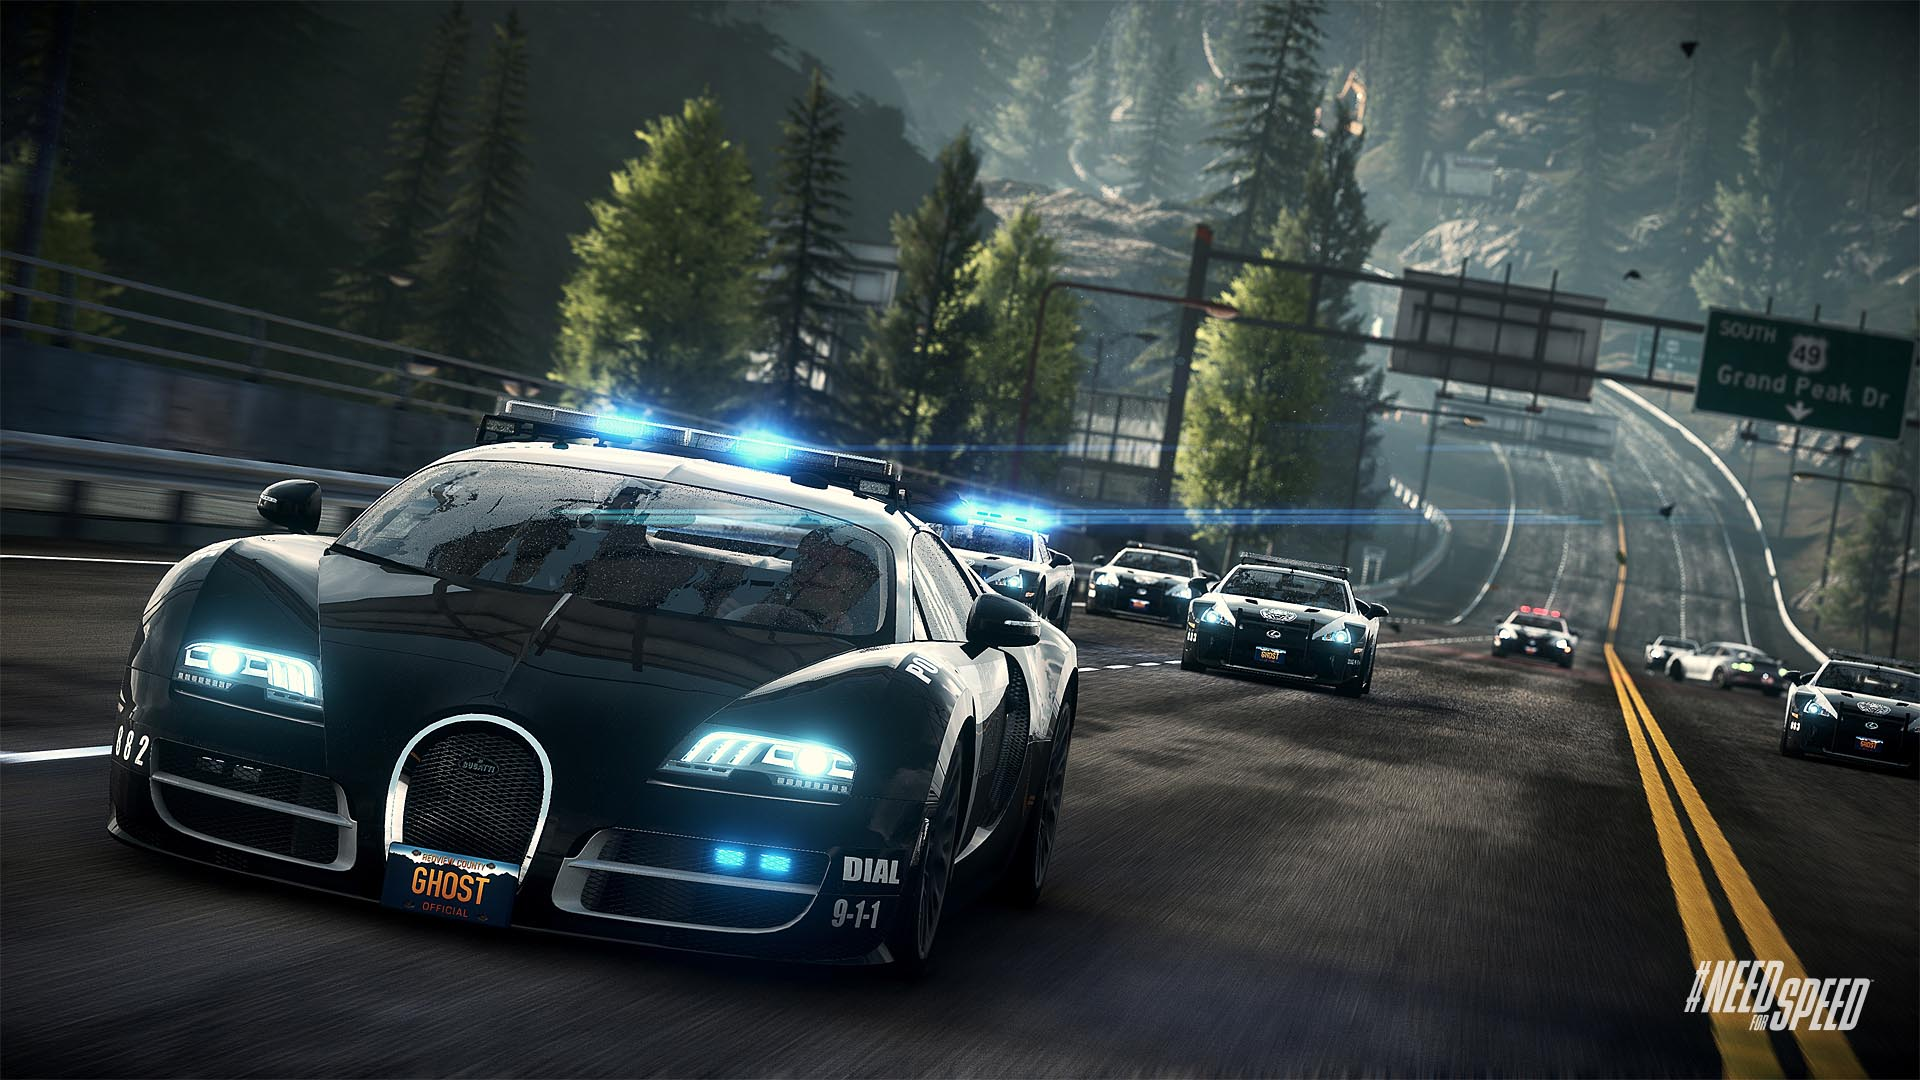 There's a new <i>Need for Speed</i> expected in November, but if you need your classic cops vs street racers fix, there's nothing better. If you're out looking for a physical copy, the Complete Edition includes all DLC packs. The Wii U version of <i>Most Wanted</i> gets a special mention here as one of the few games that take full advantage of the Wii U gamepad. | <b>For:</b> PC, PS4, Xbox One, PS3, Xbox 360